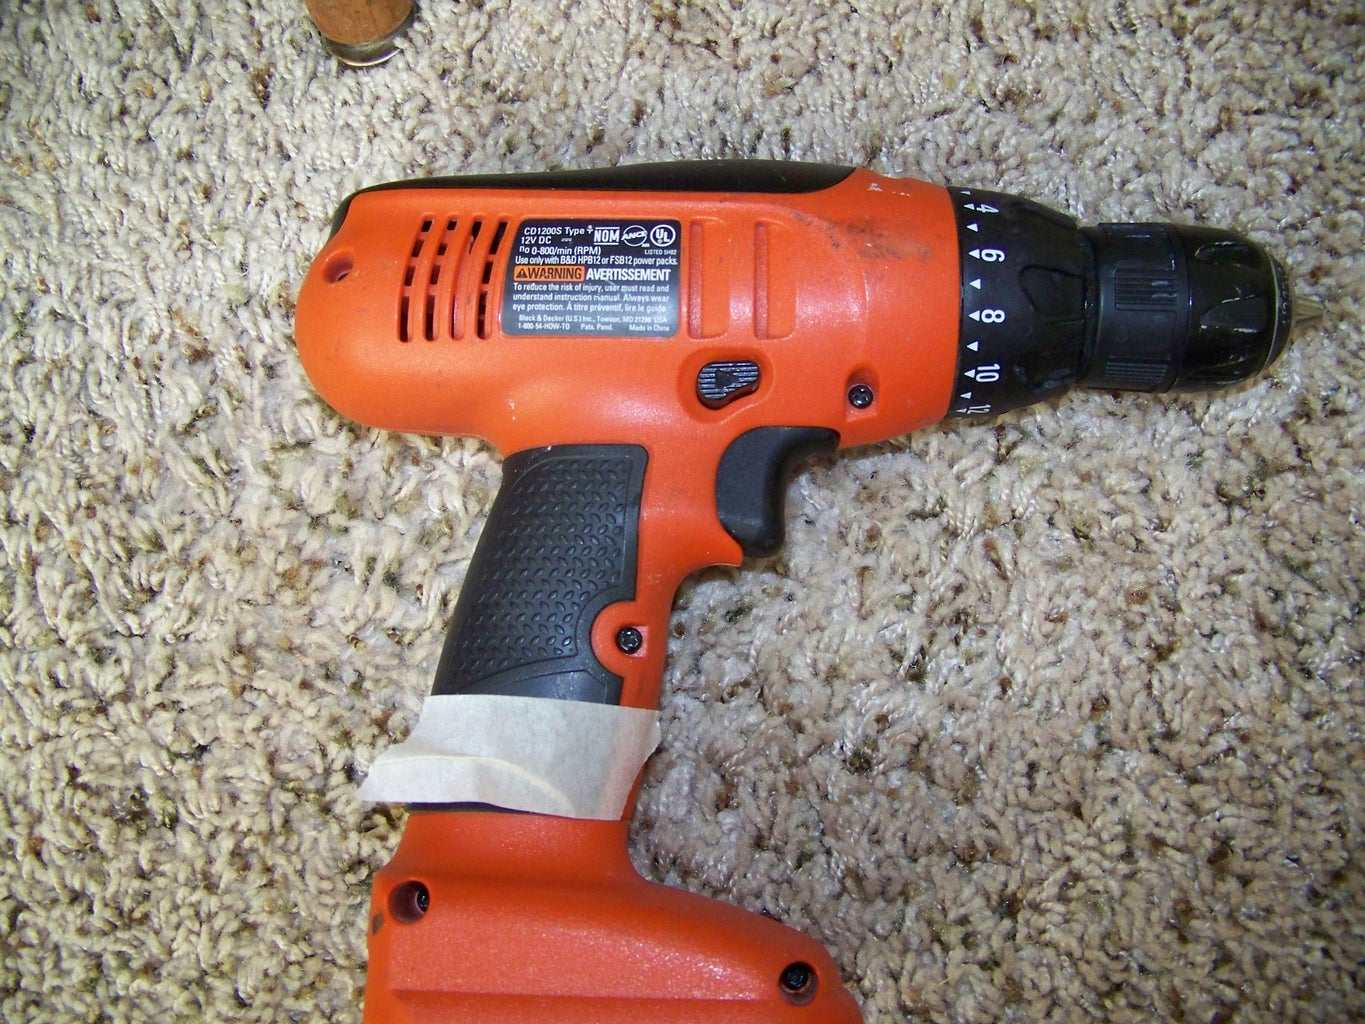 Take Apart Your Drill